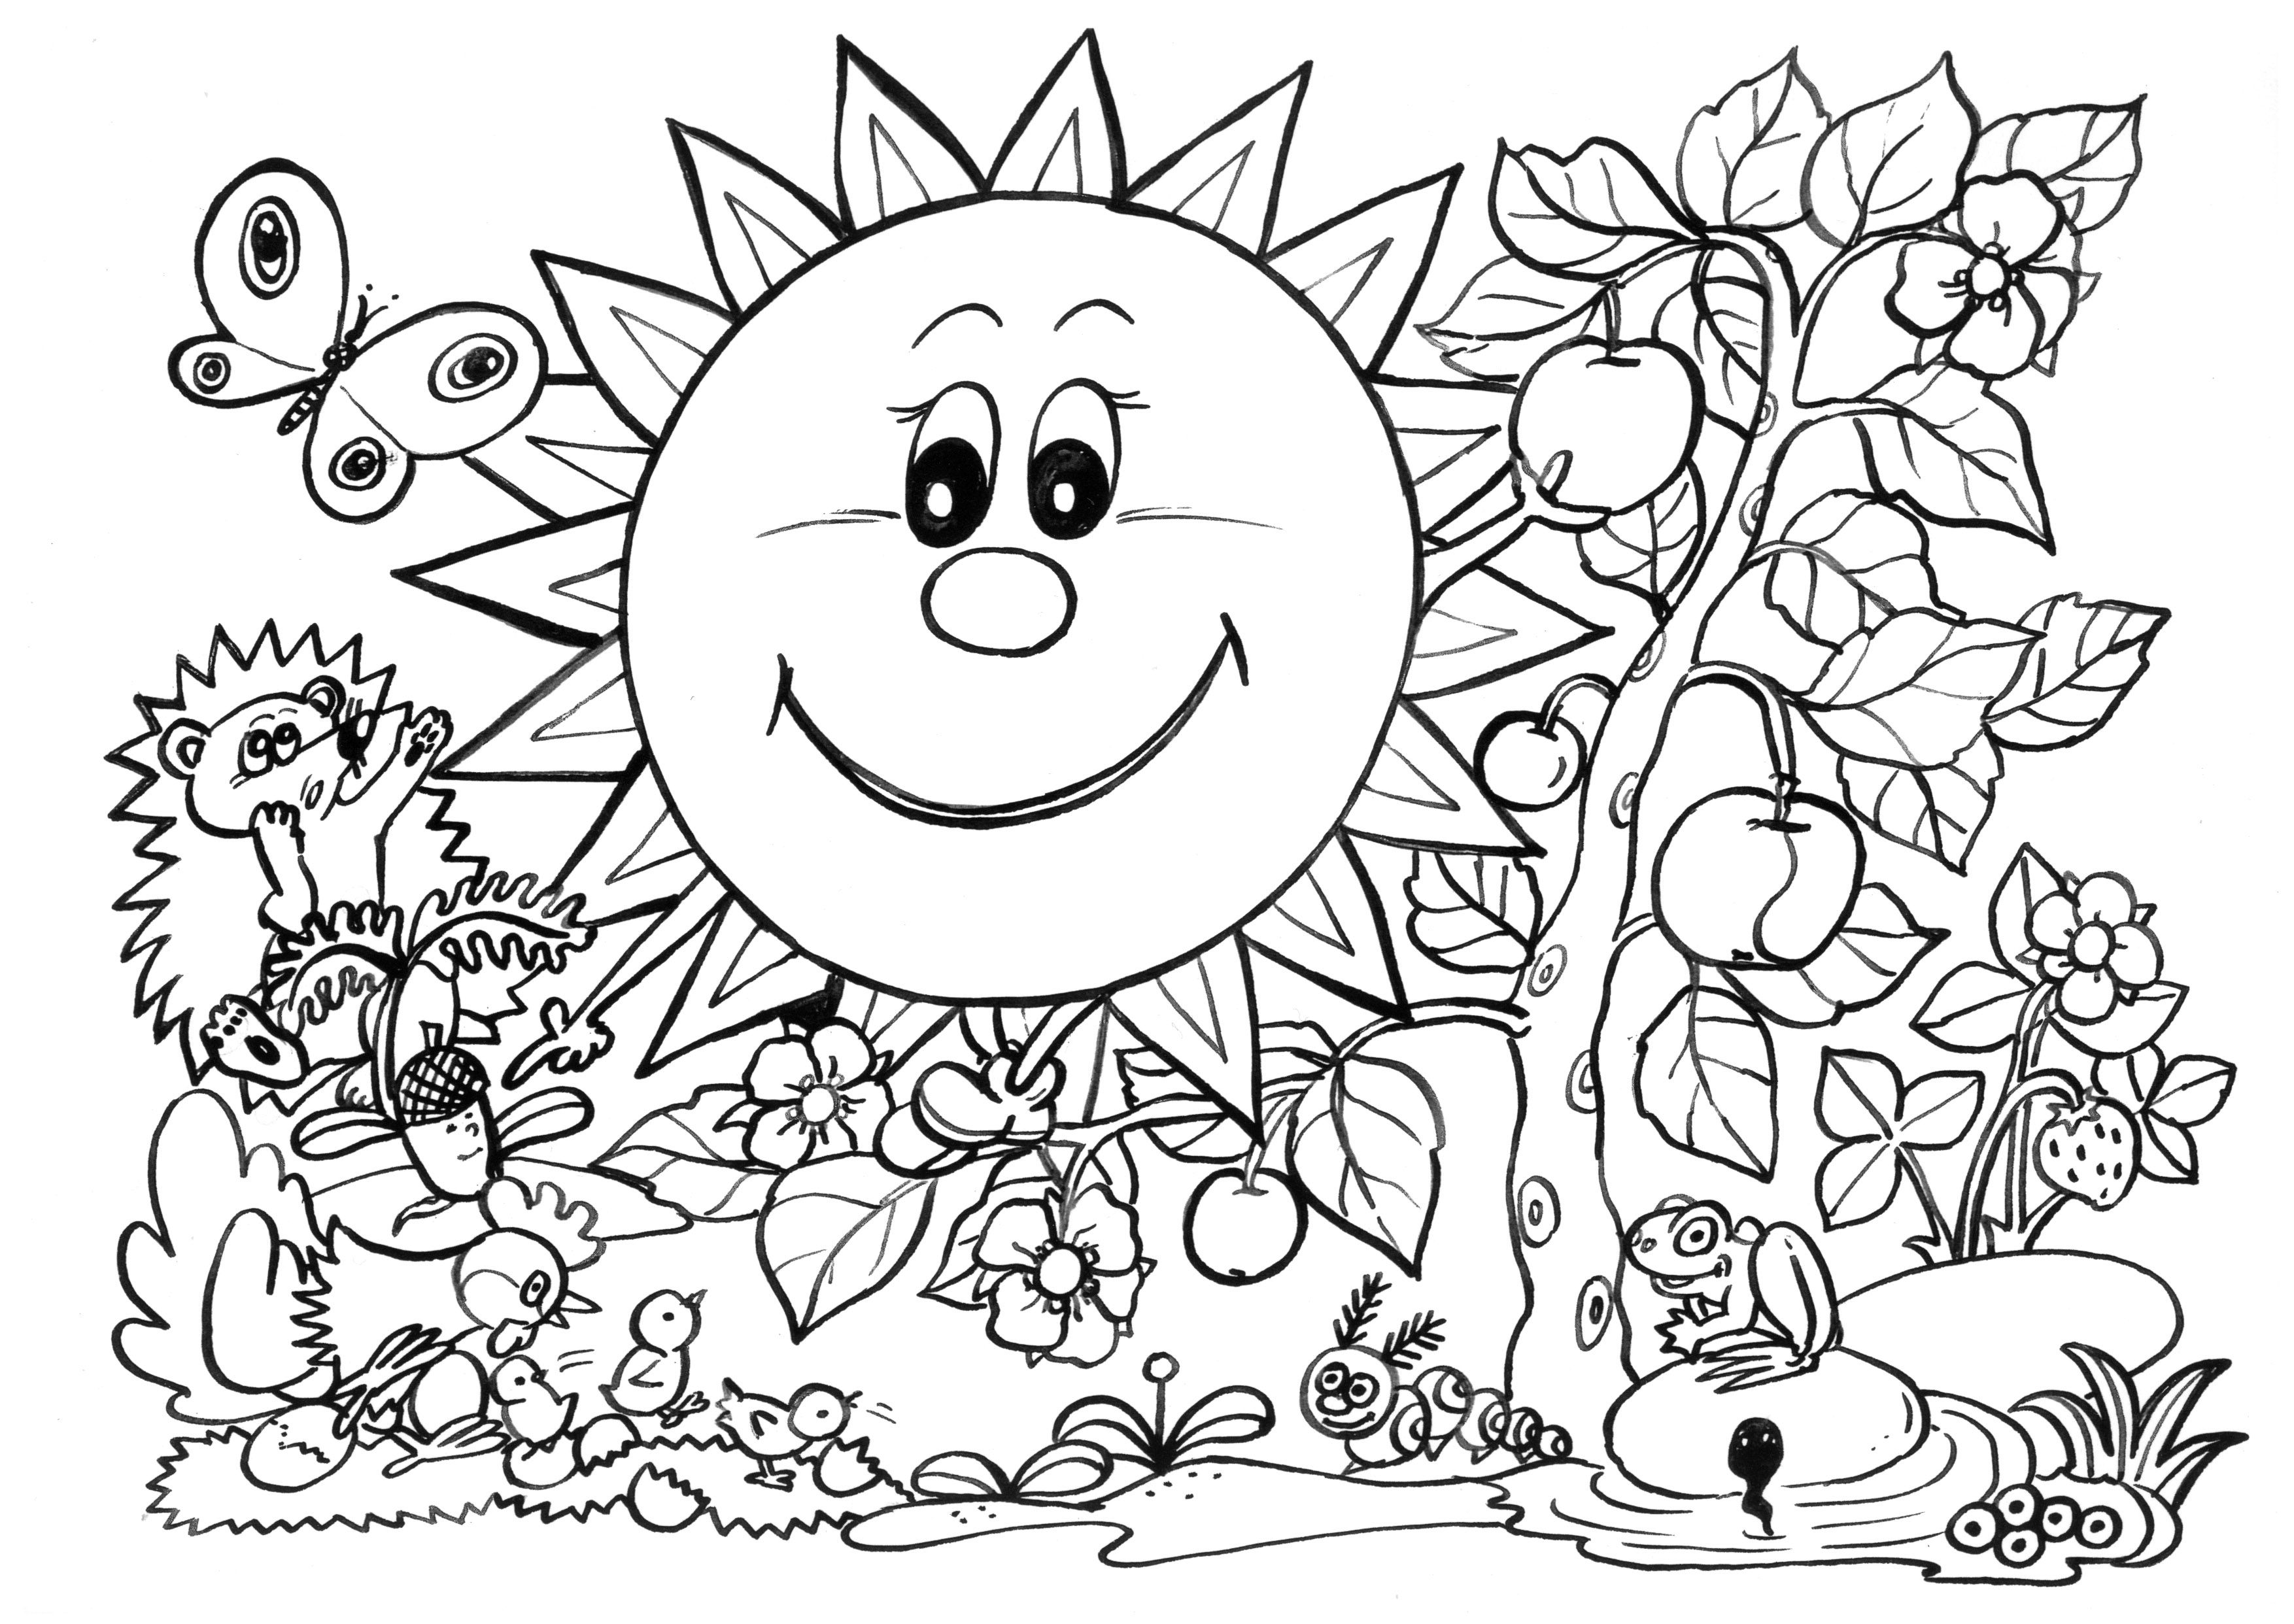 Spring Coloring Sheets For Adults Elegant Free Printable Coloring Pages Spring Flowers Sho Spring Coloring Sheets Spring Coloring Pages Easter Coloring Pages